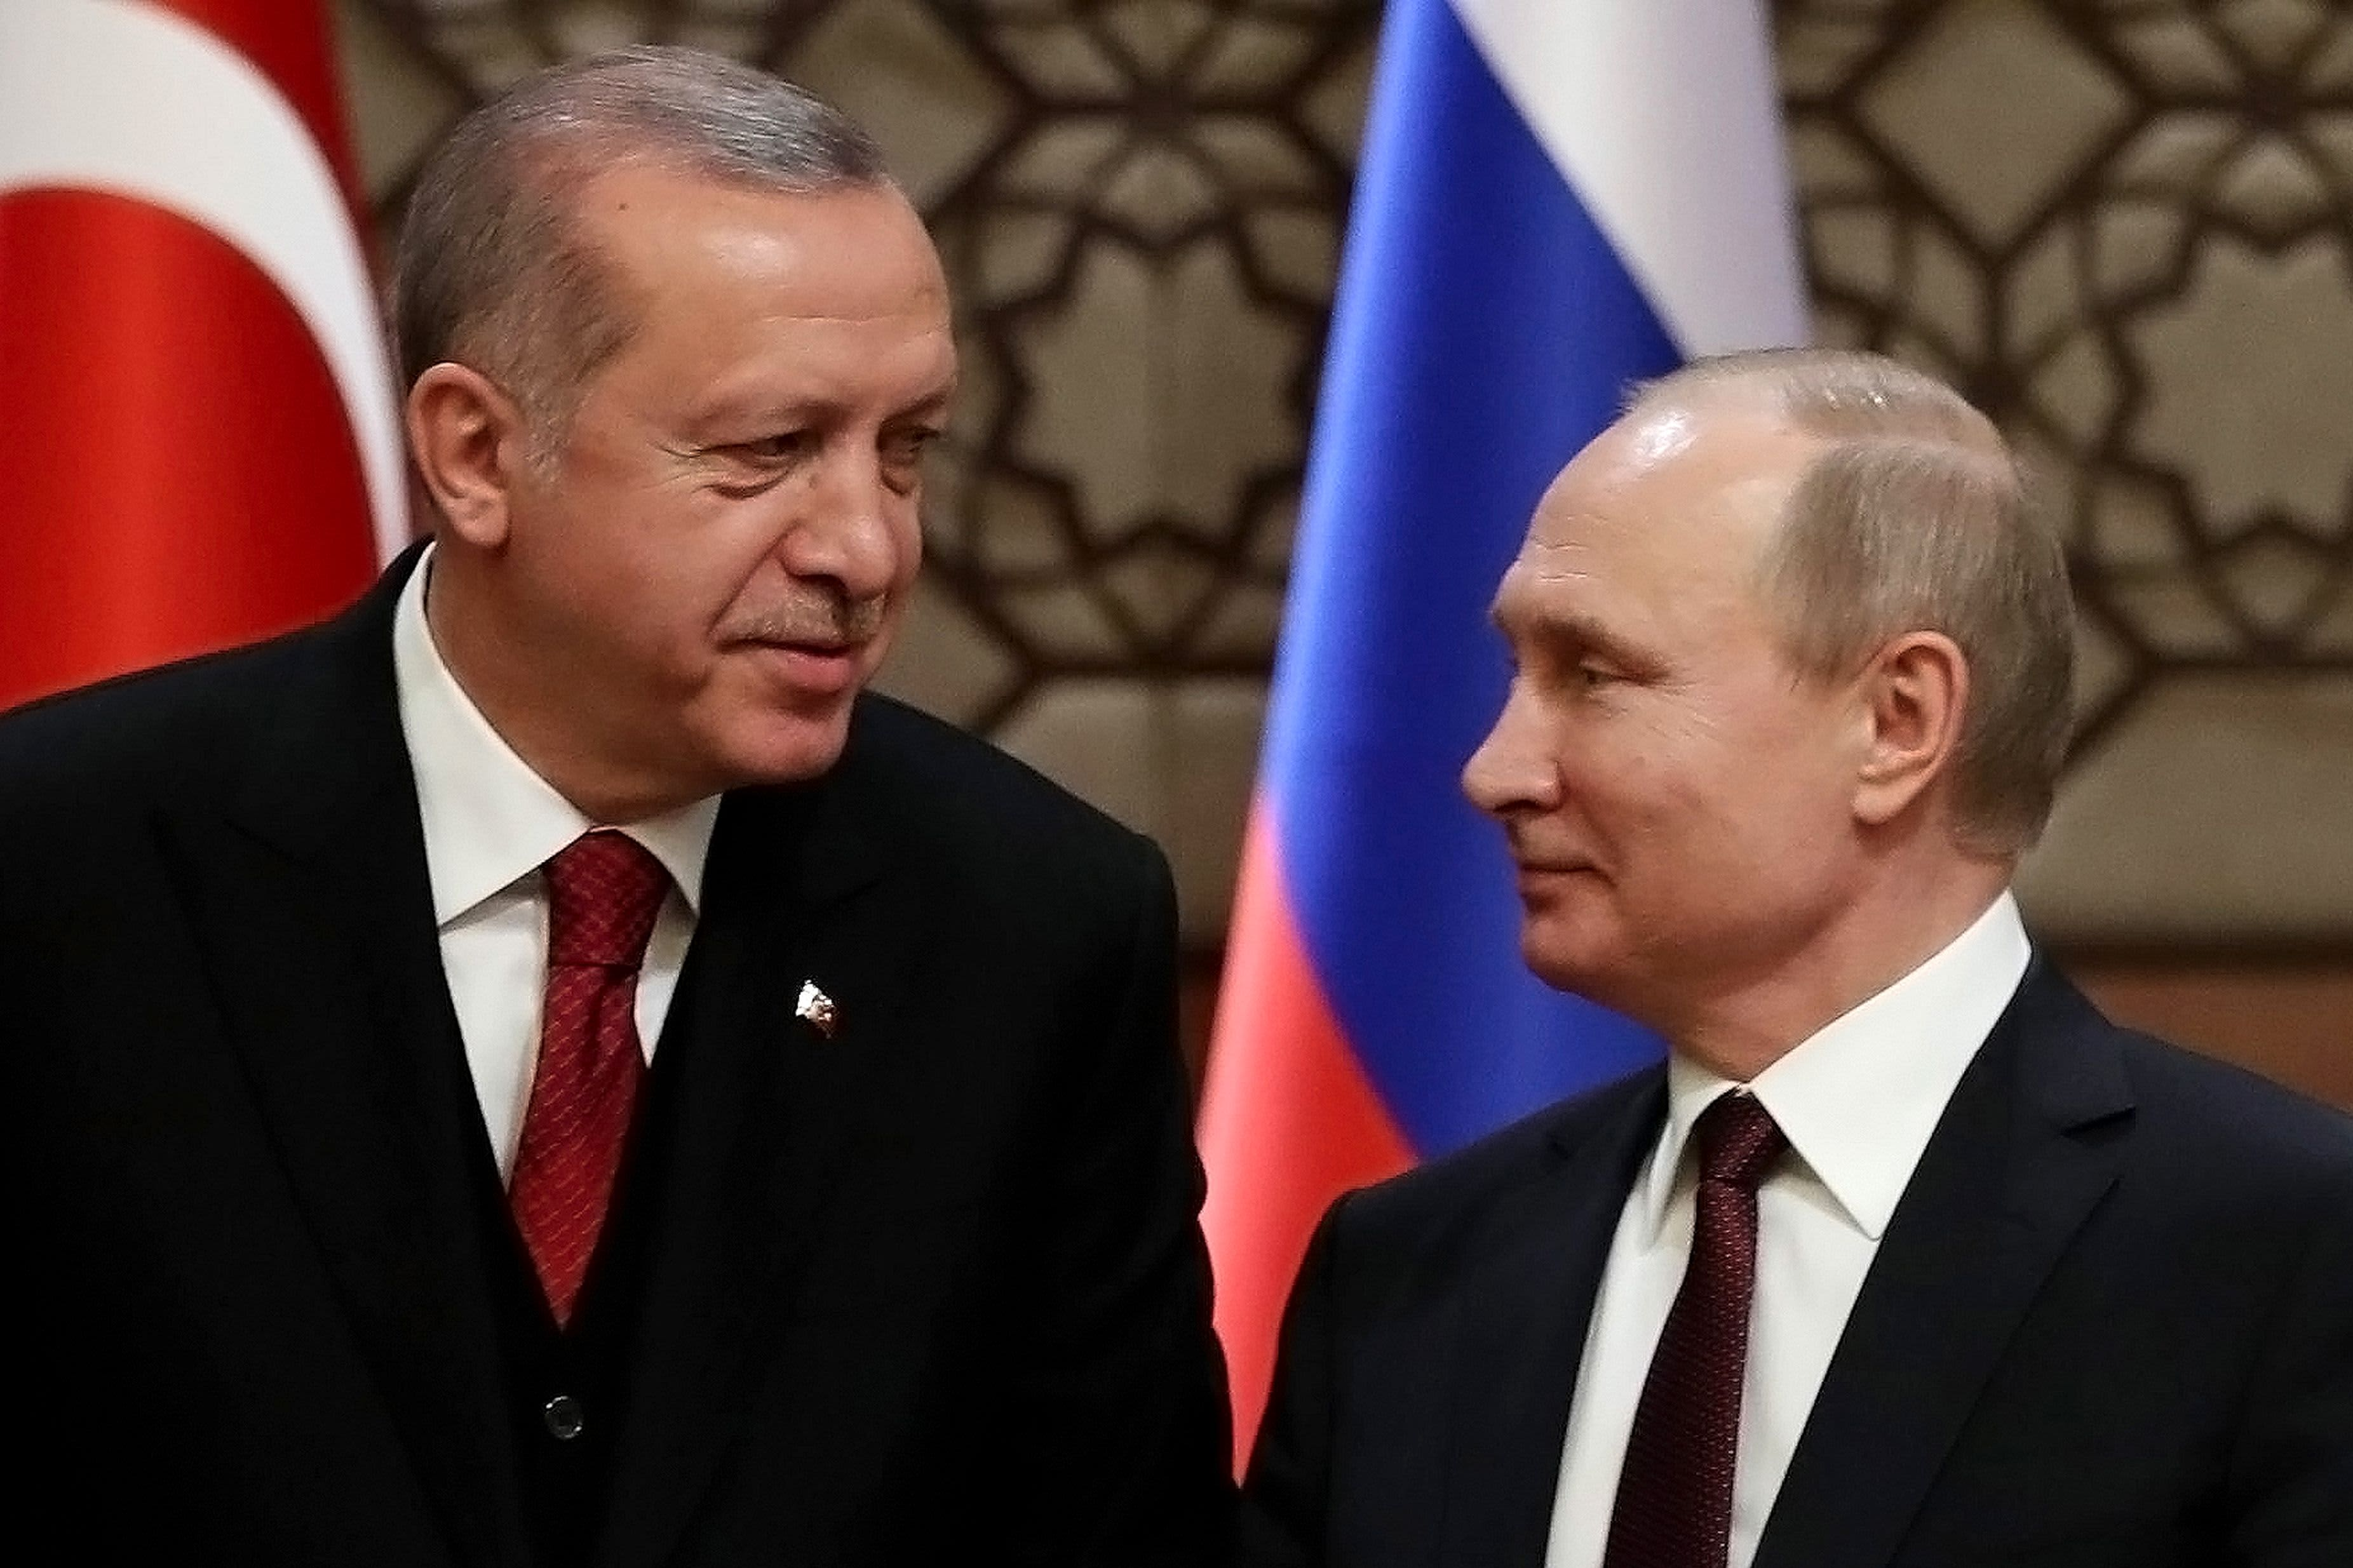 Turkey's multibillion-dollar arms deal with Russia casts a shadow over NATO summit